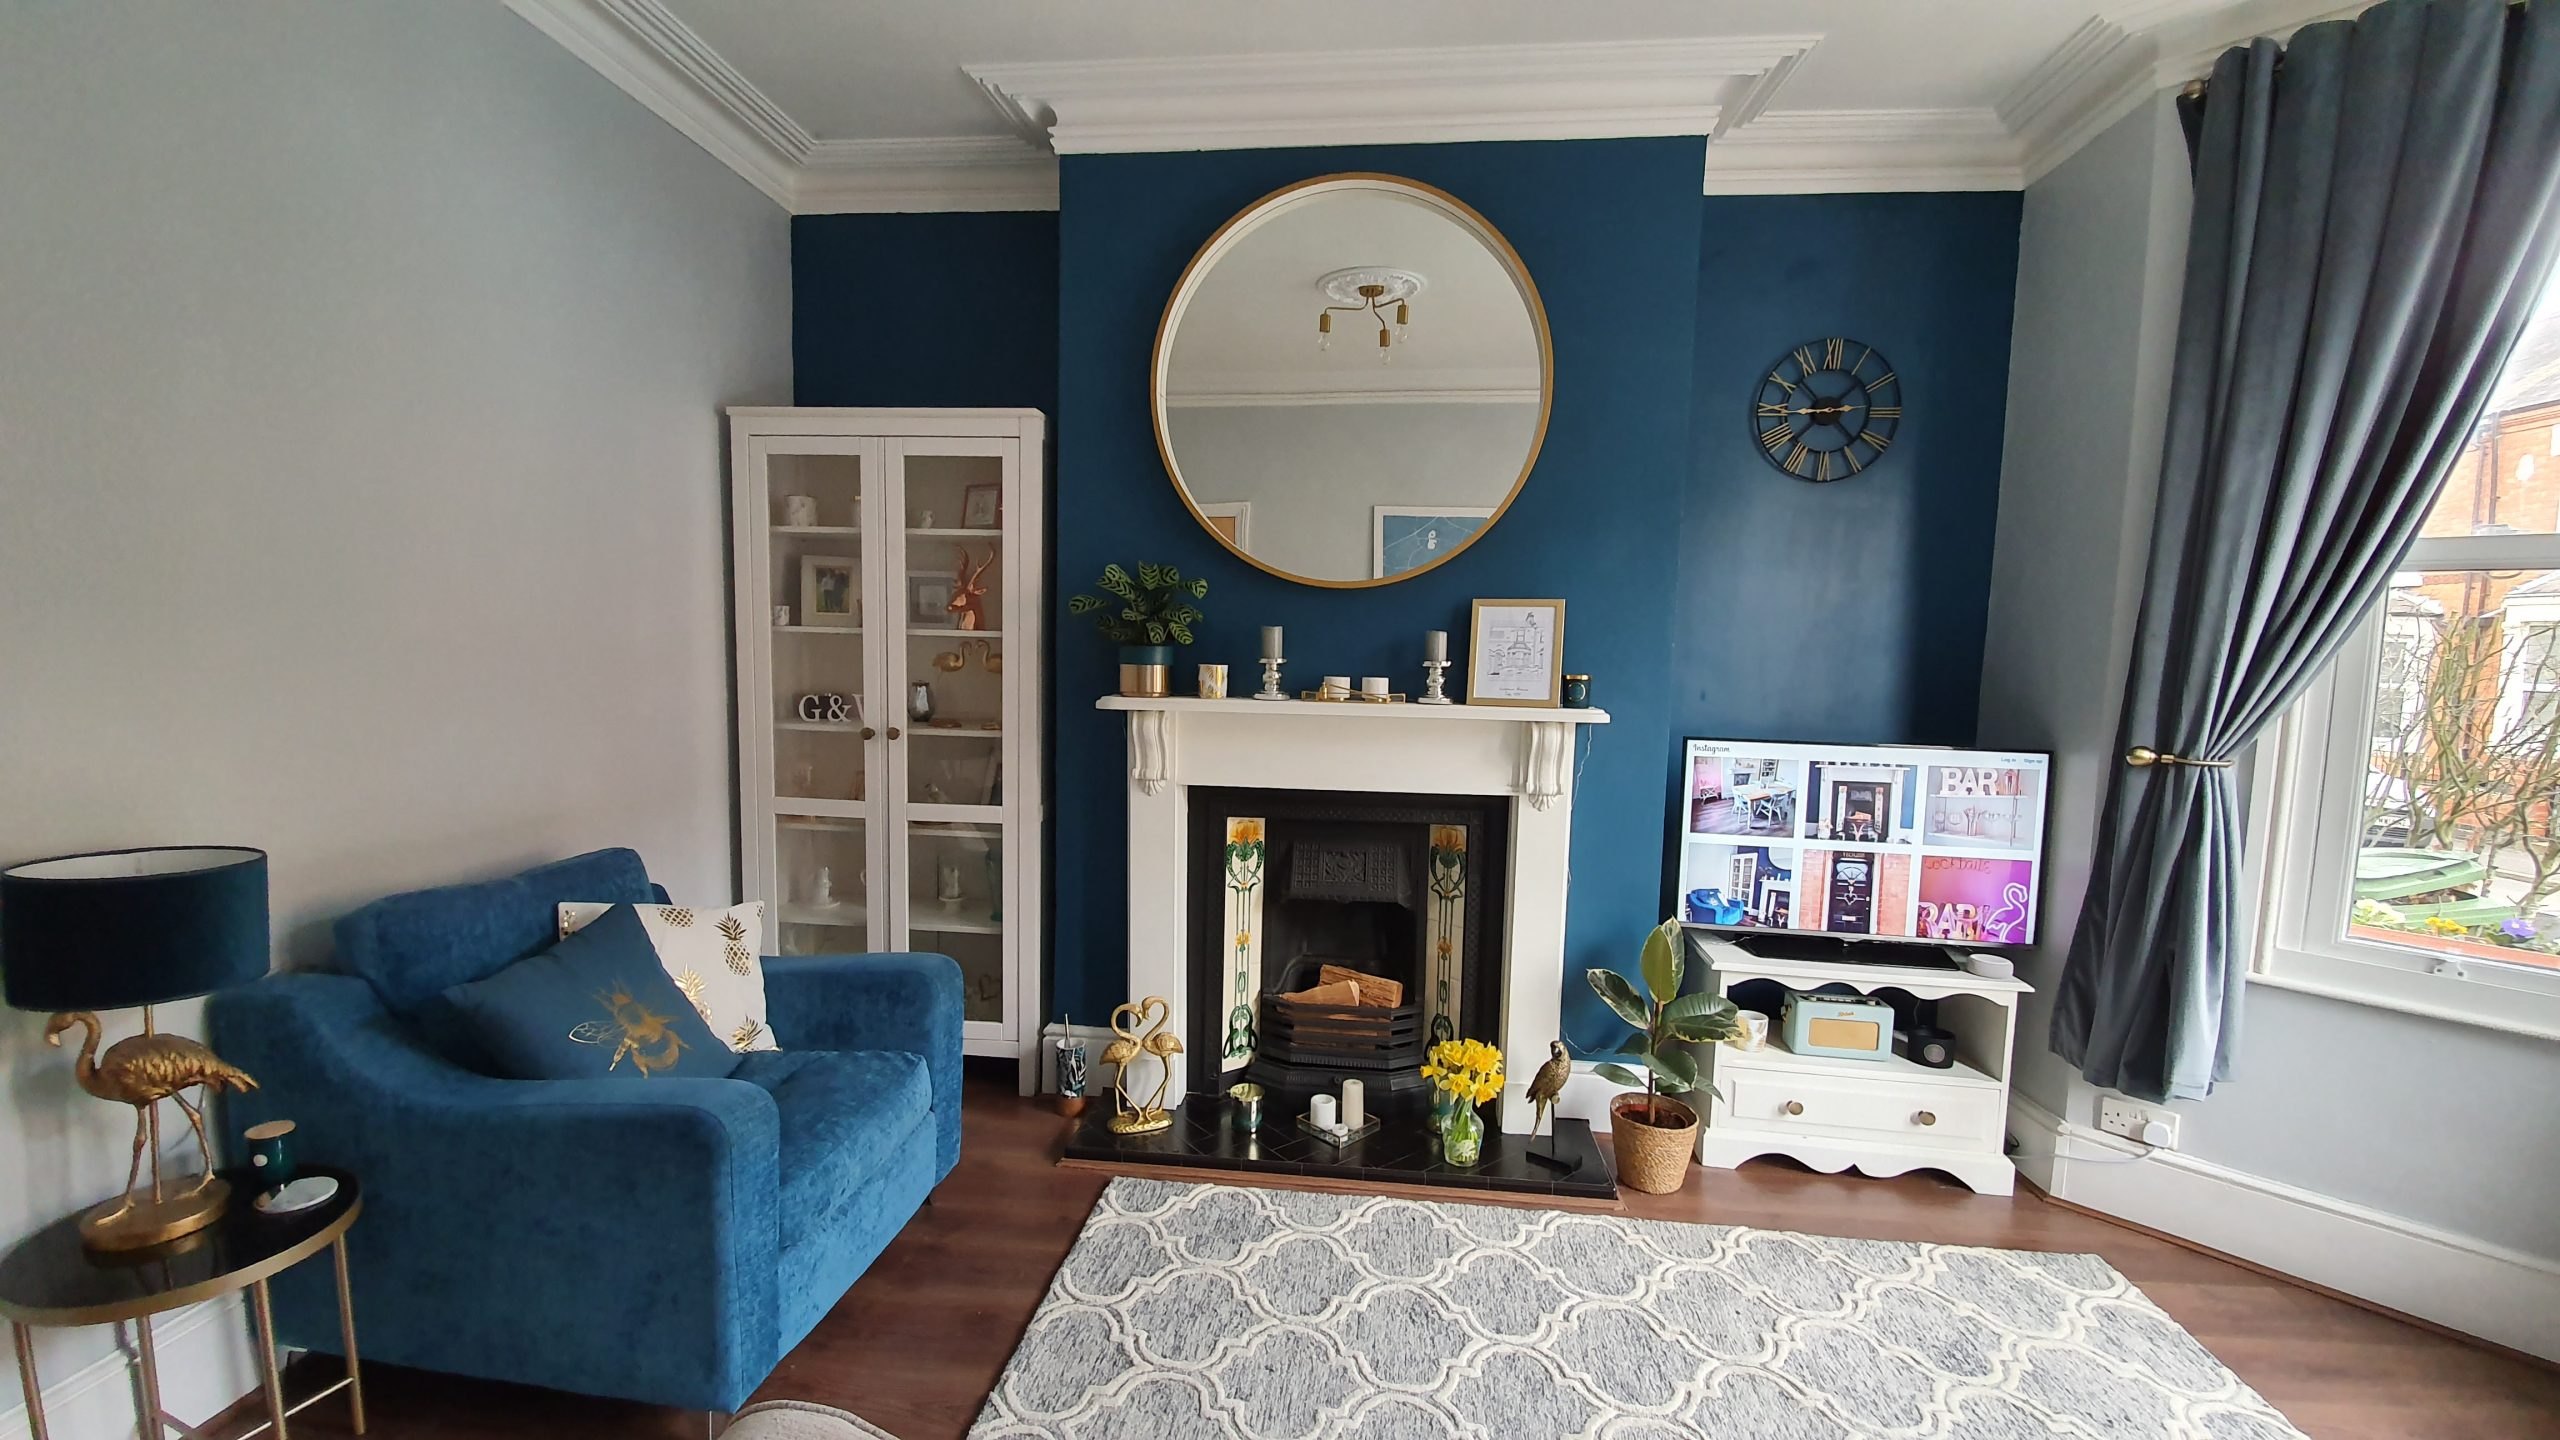 Our Victorian Home: The Living Room